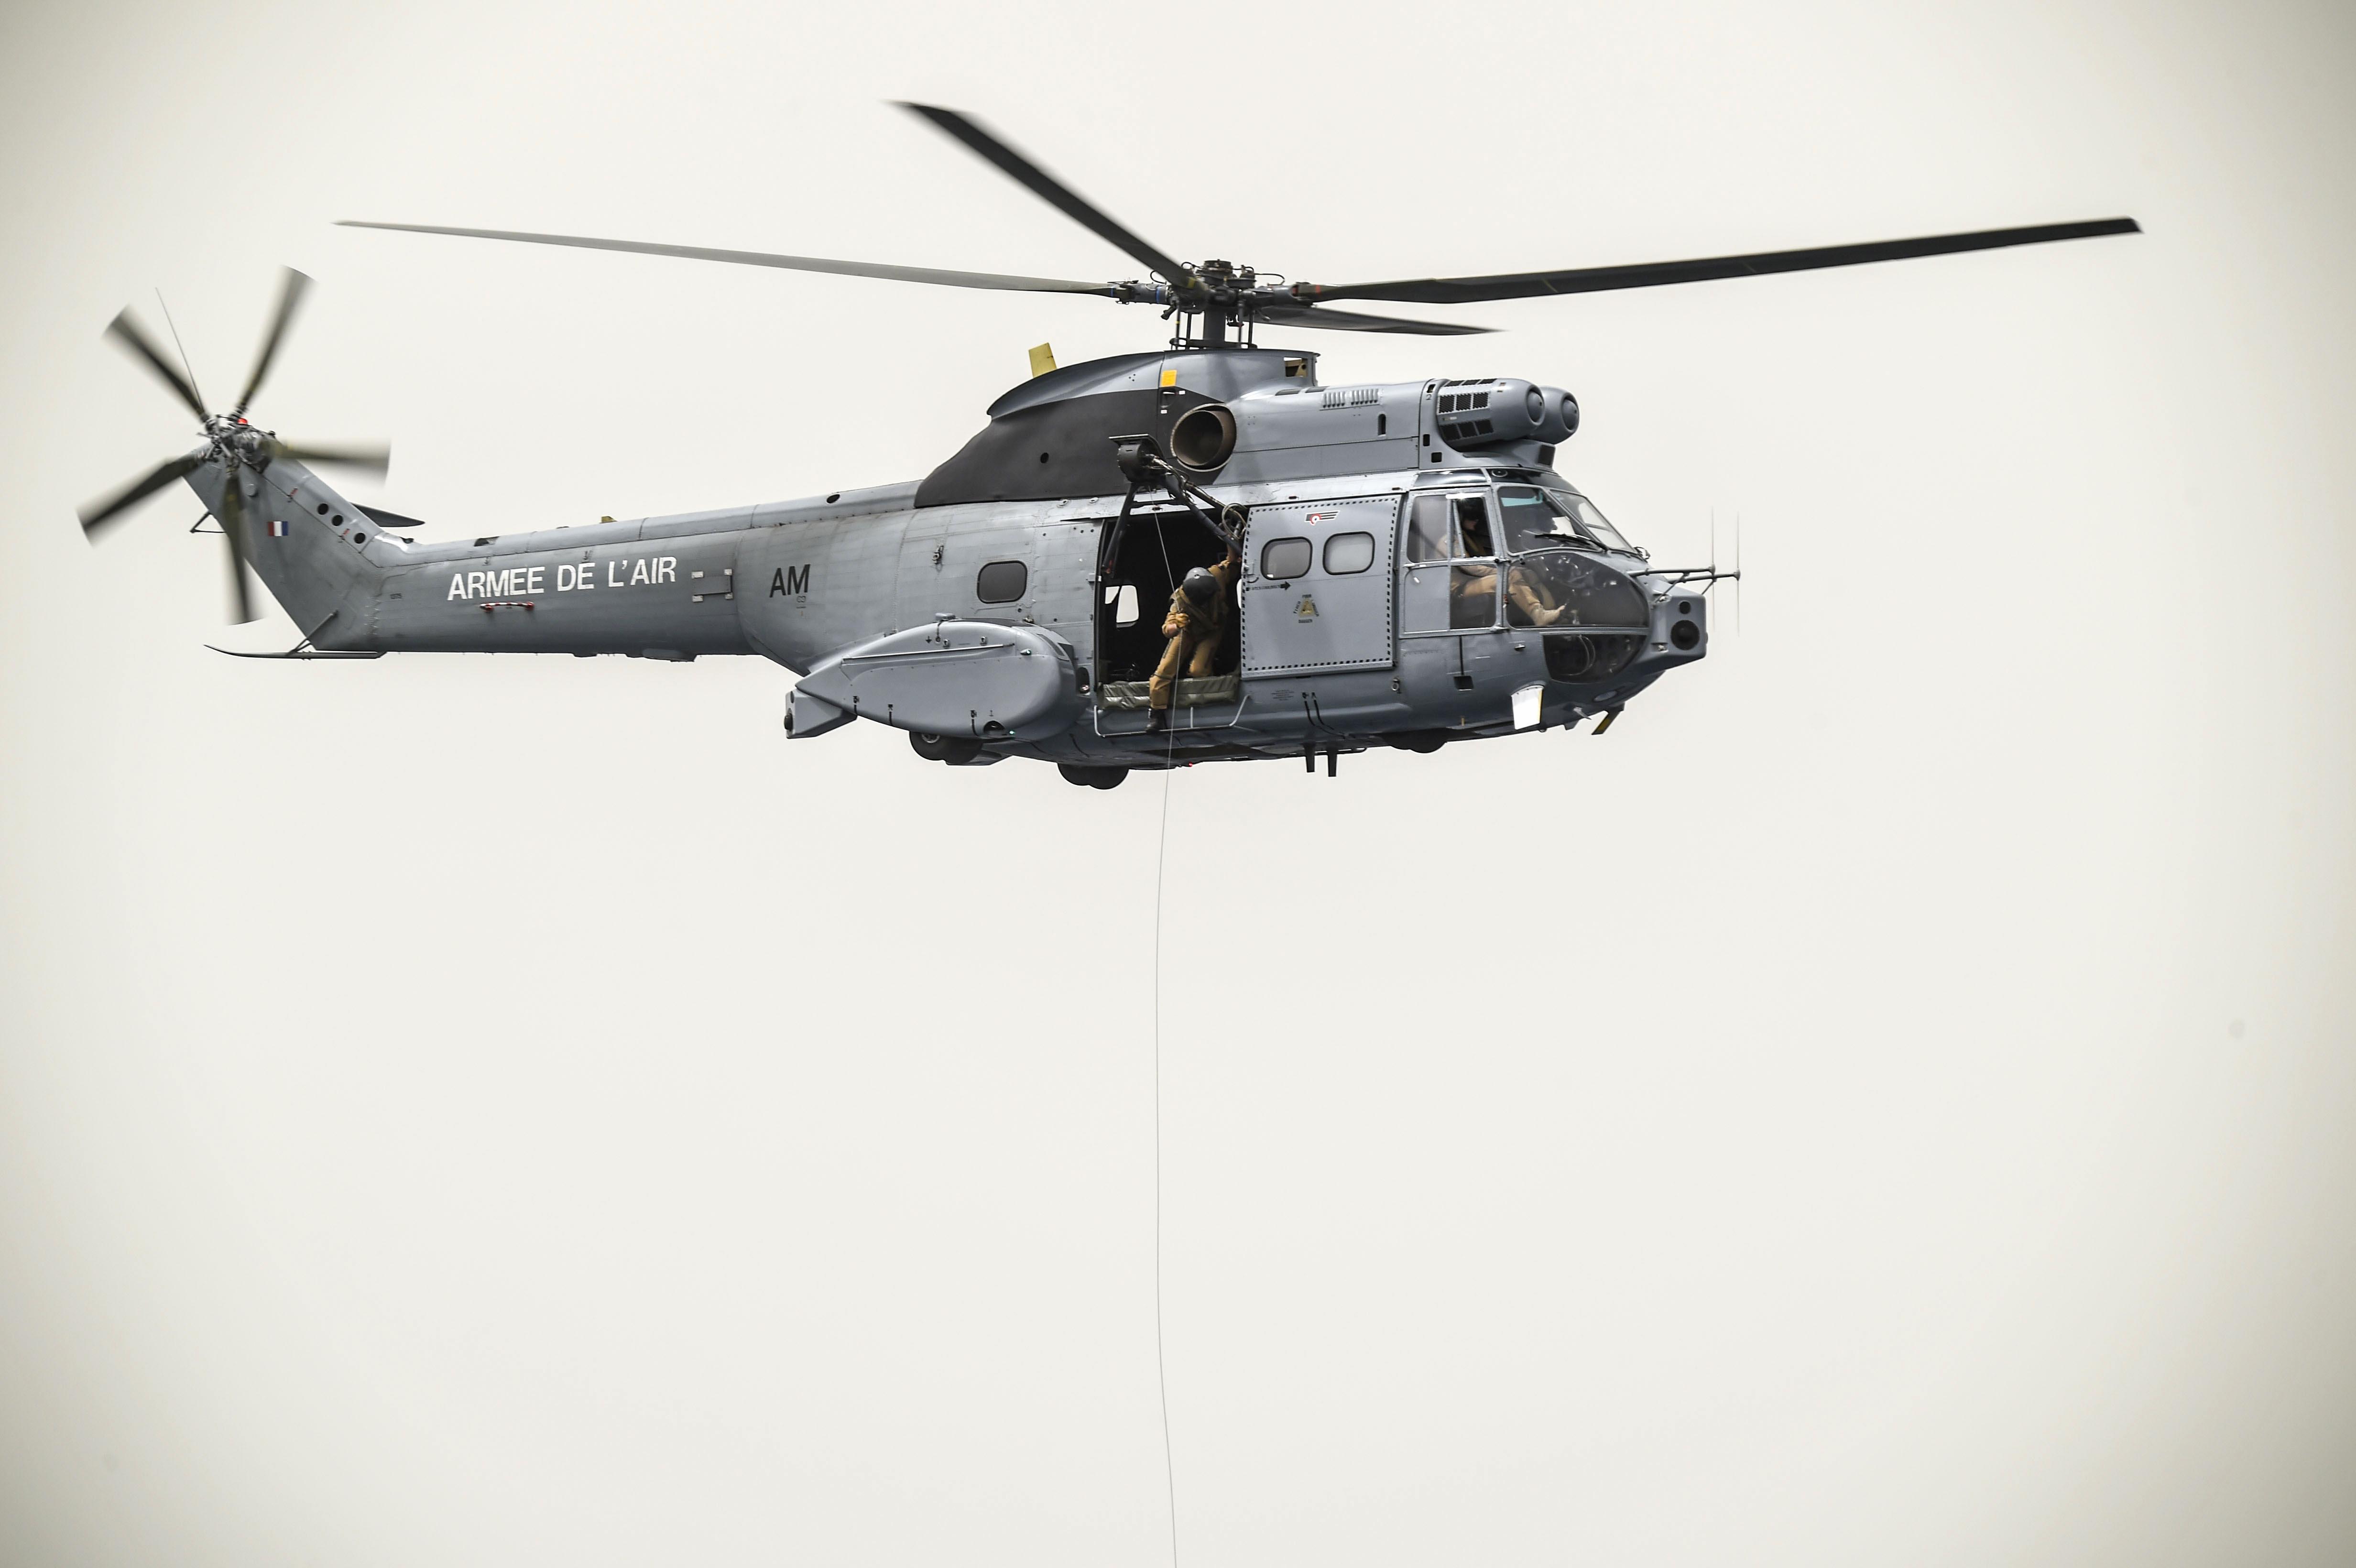 A French Air Force Aérospatiale SA 330 Puma helicopter hovers over the Gulf of Tadjoura during a bilateral water operations exercise pararescuemen  from the 82nd Expeditionary Rescue Squadron, assigned to Combined Joint Task Force-Horn of Africa, in the Gulf of Tadjoura, July 3, 2017. The results of the exercise will aid in the development of standard operating procedures between CJTF-HOA and the French Forces stationed in Djibouti for the U.S. and France's mutual support of maritime  rescue capabilities within the Horn of Africa region.  (U.S. Air Force photo by Staff Sgt. Eboni Prince)